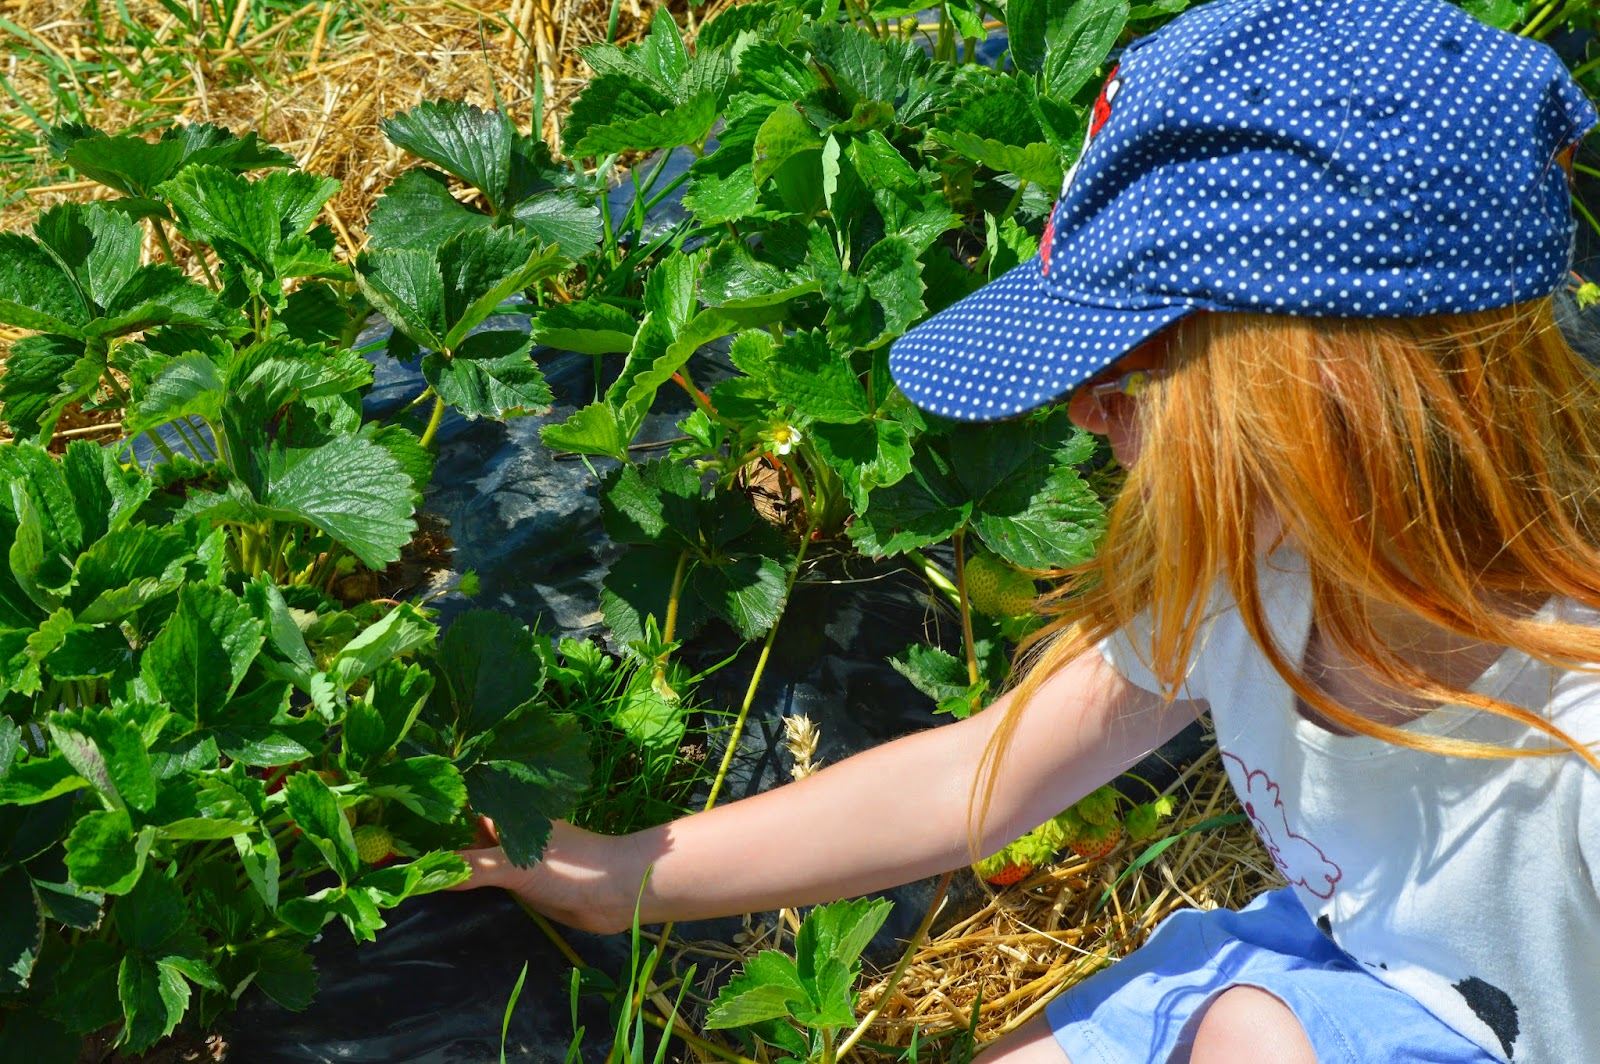 Pick your own strawberries at Brockbushes farm, Corbridge